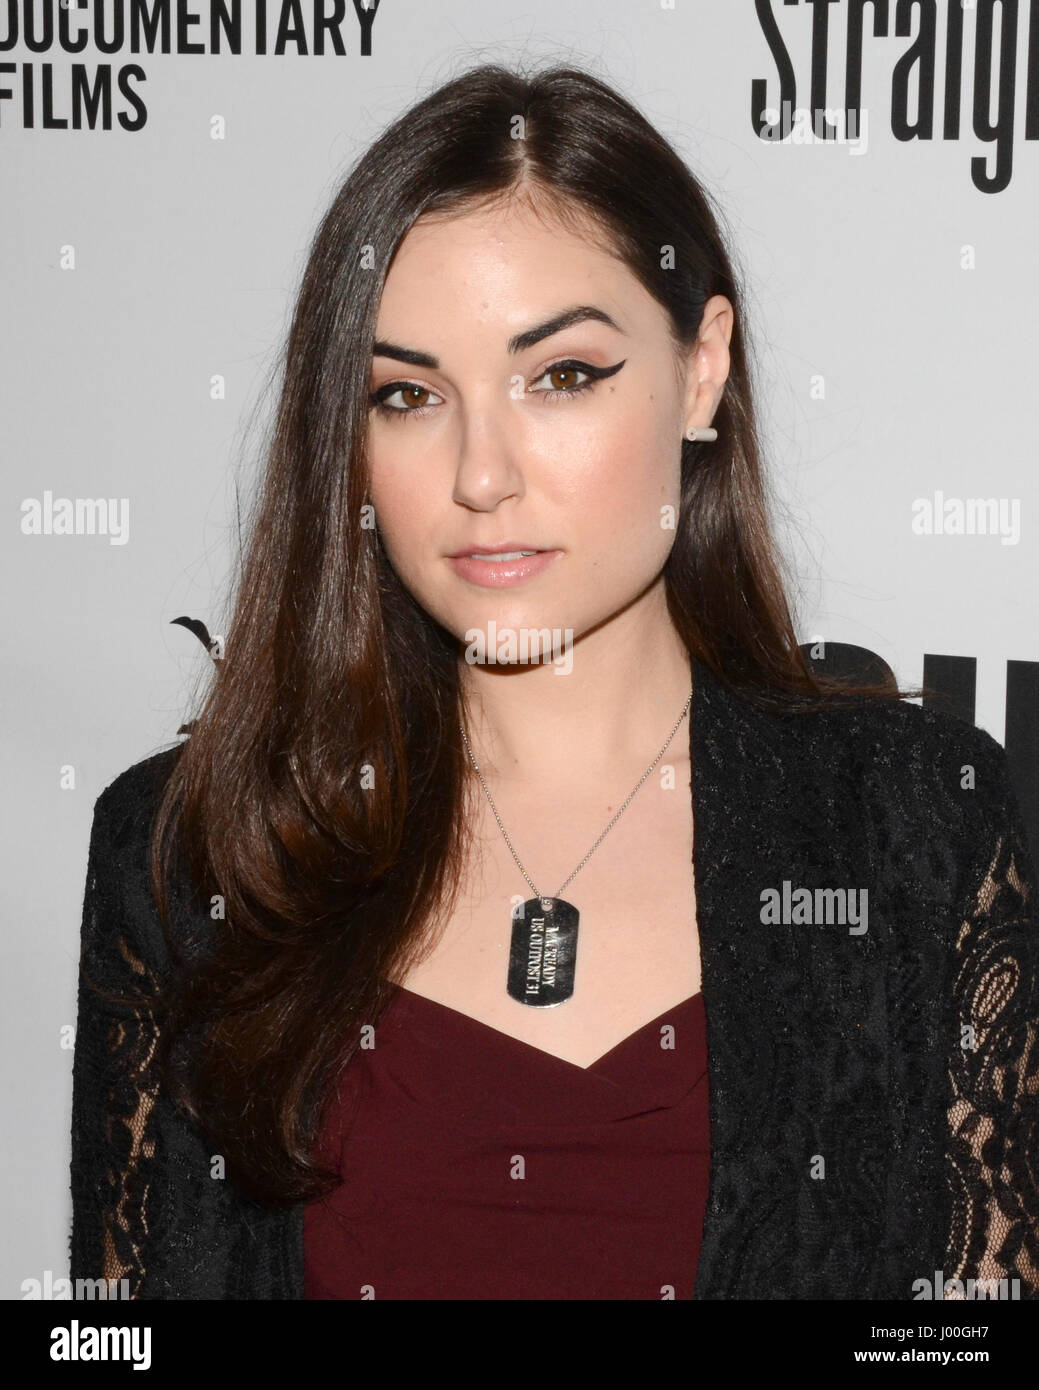 Photos Sasha Grey nudes (37 photo), Topless, Paparazzi, Instagram, cameltoe 2020